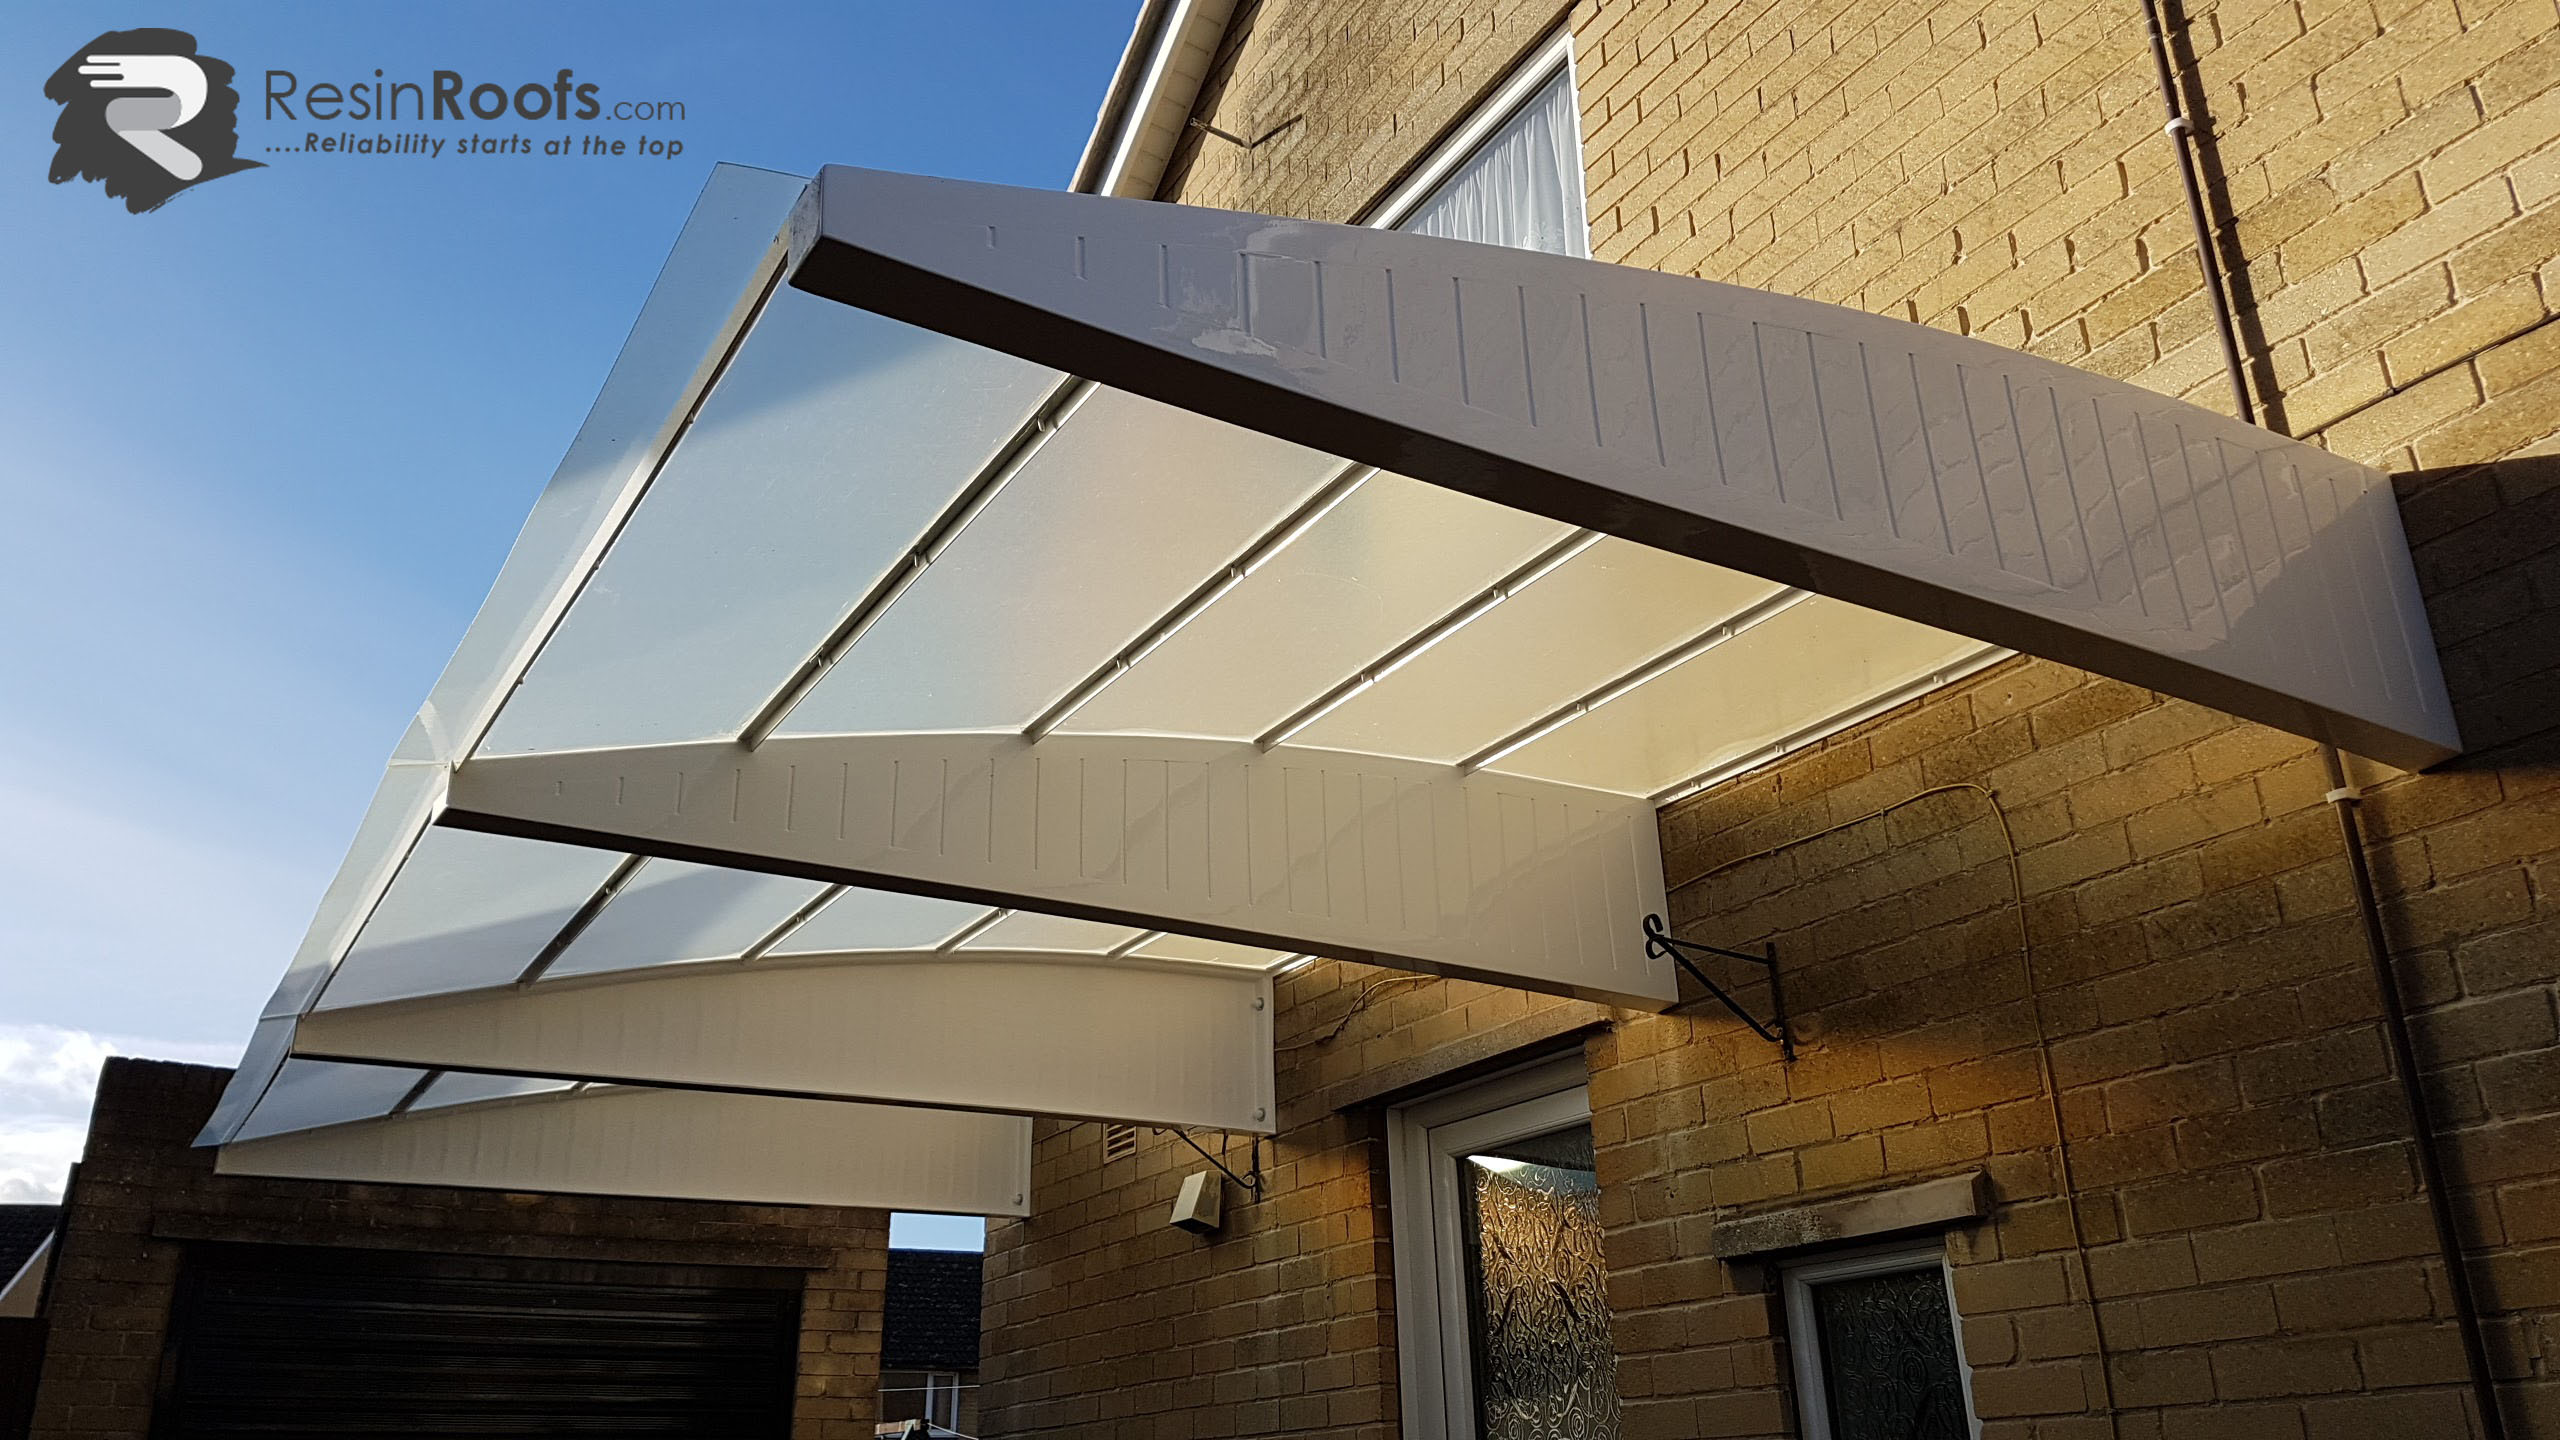 Carport Cantilever GRP up to 2440MM Projection Including Fixing Kit